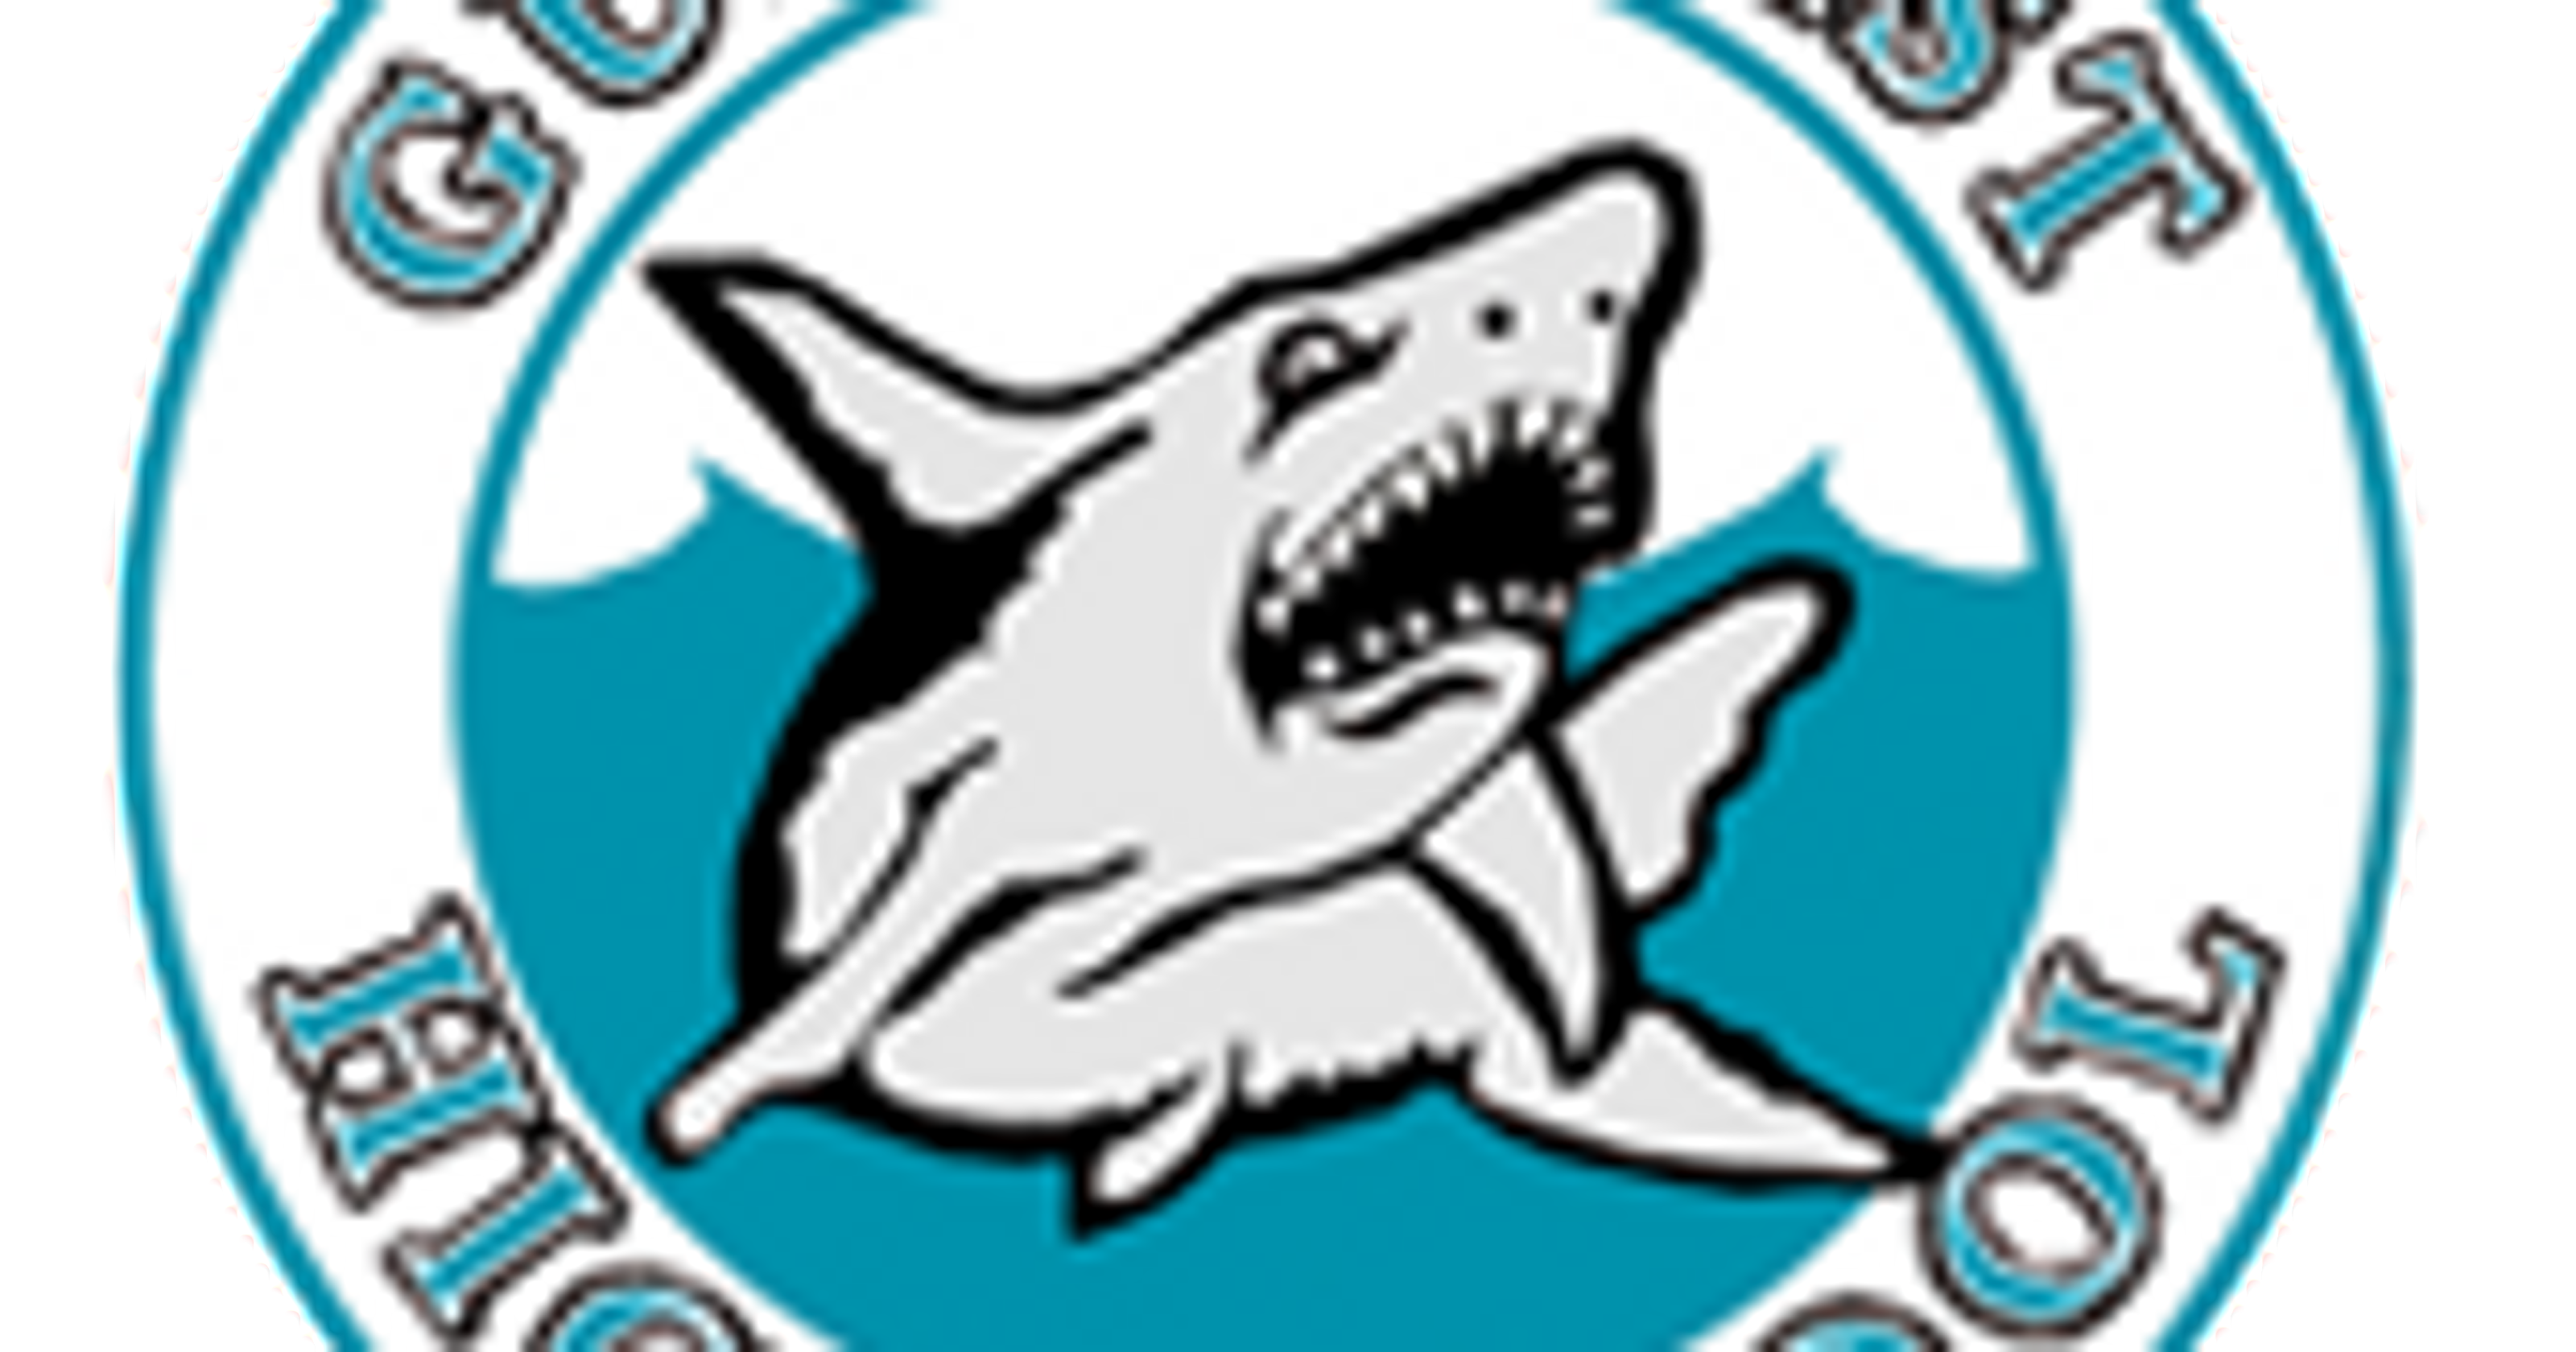 Baseball clipart shark. High school gulf coast